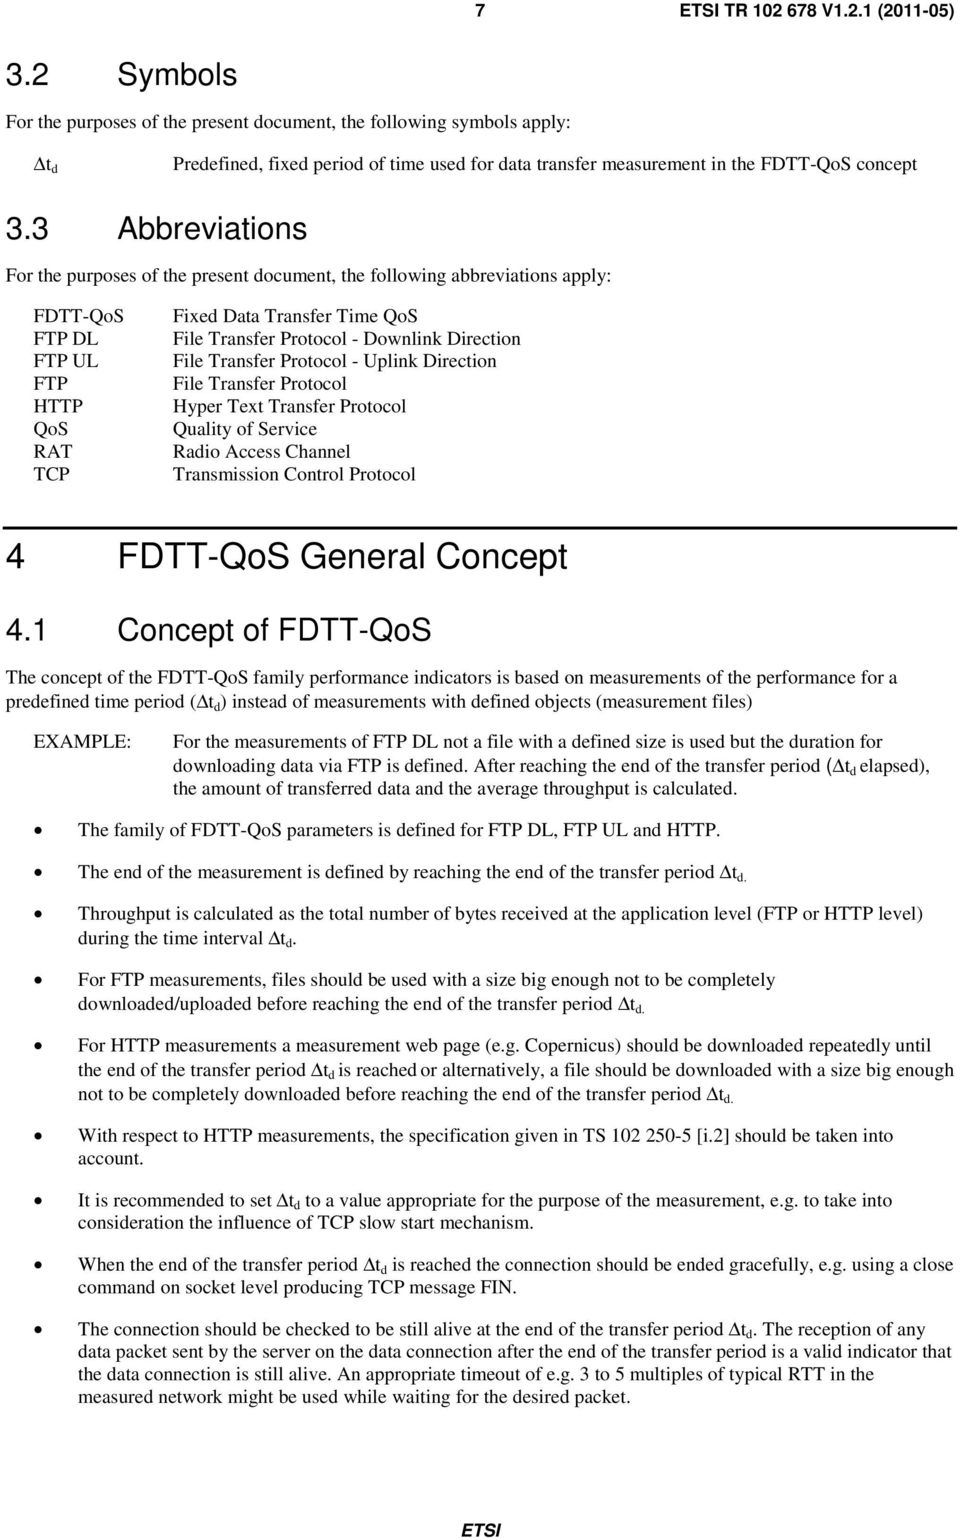 3 Abbreviations For the purposes of the present document, the following abbreviations apply: FDTT-QoS FTP DL FTP UL FTP HTTP QoS RAT TCP Fixed Data Transfer Time QoS File Transfer Protocol - Downlink